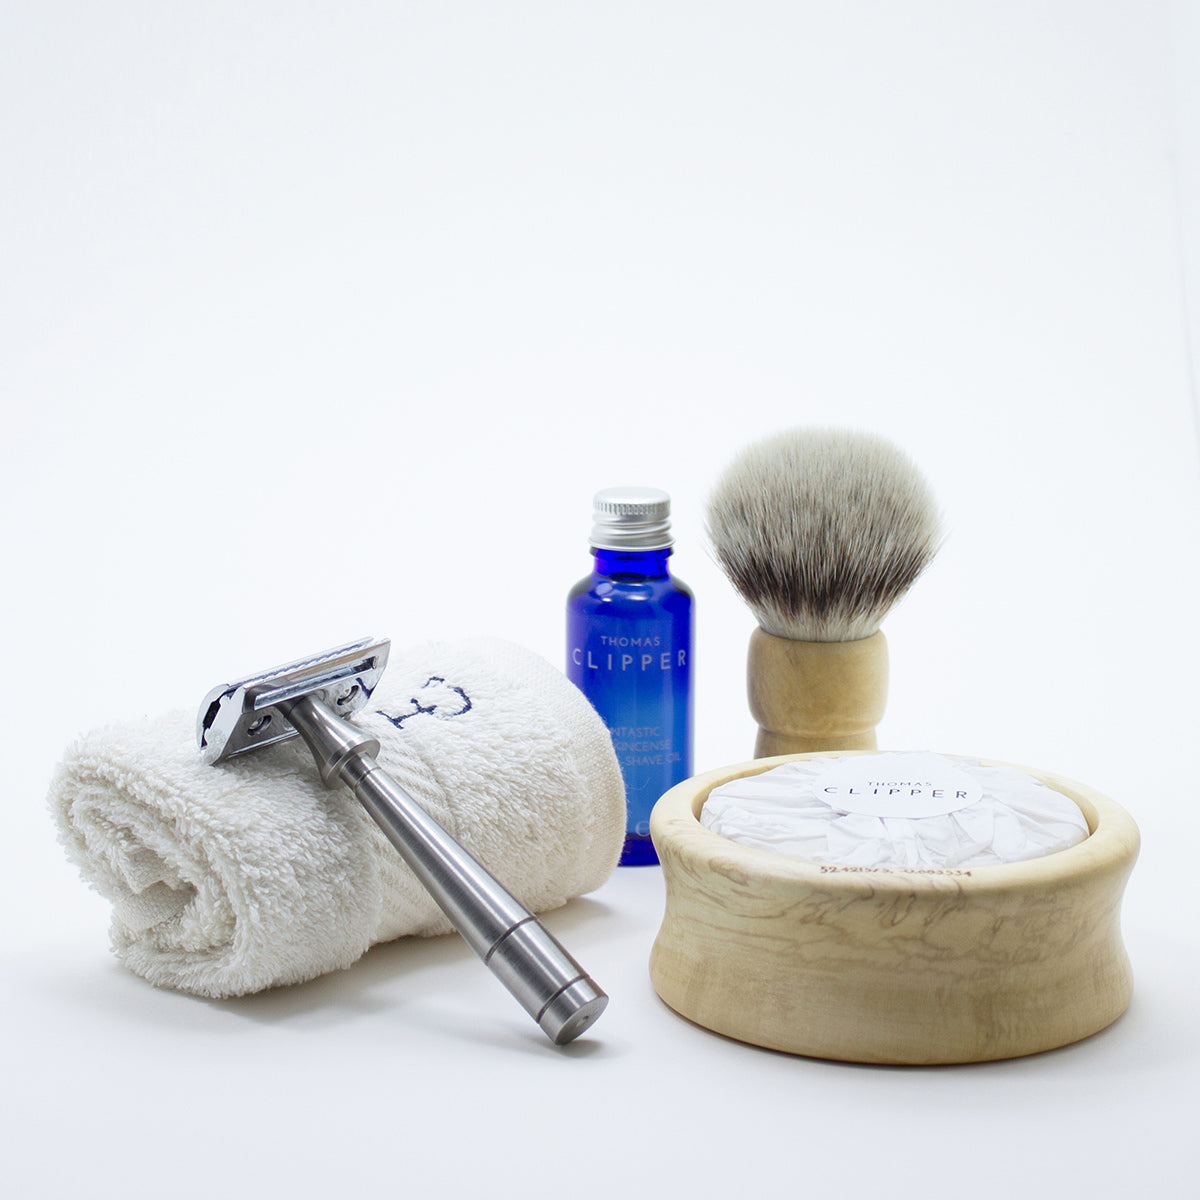 The Perfect Shaving Kit from Thomas Clipper